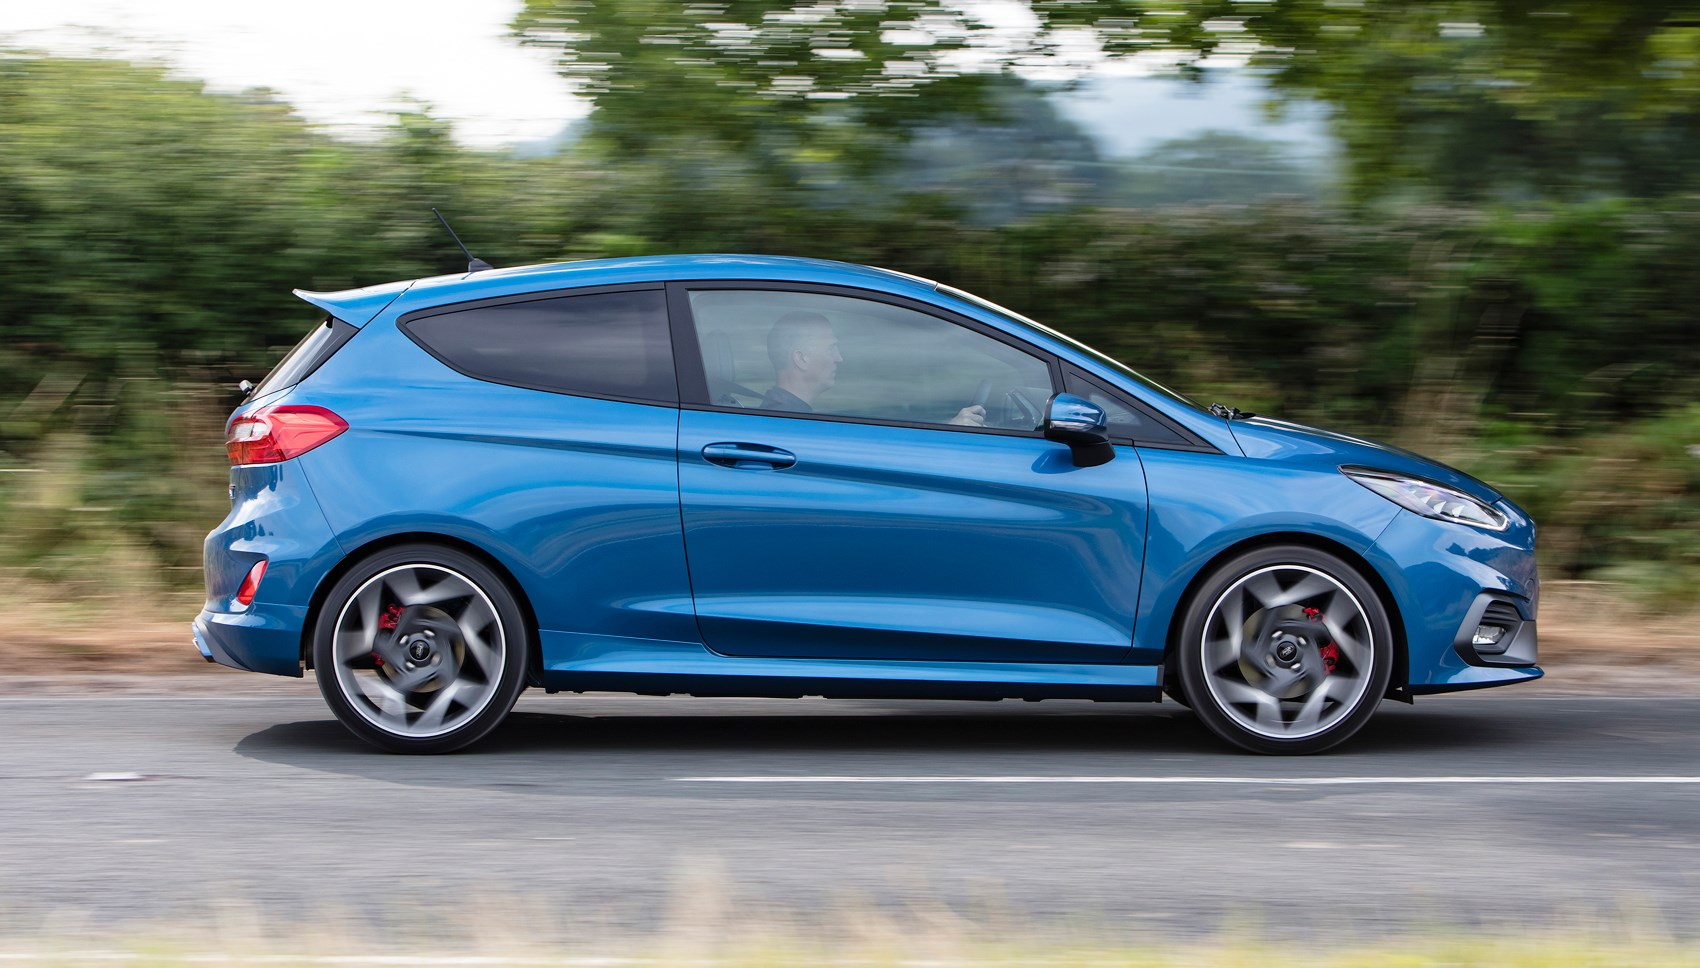 Ford Fiesta ST (2020) review: hot hatch hero | CAR Magazine